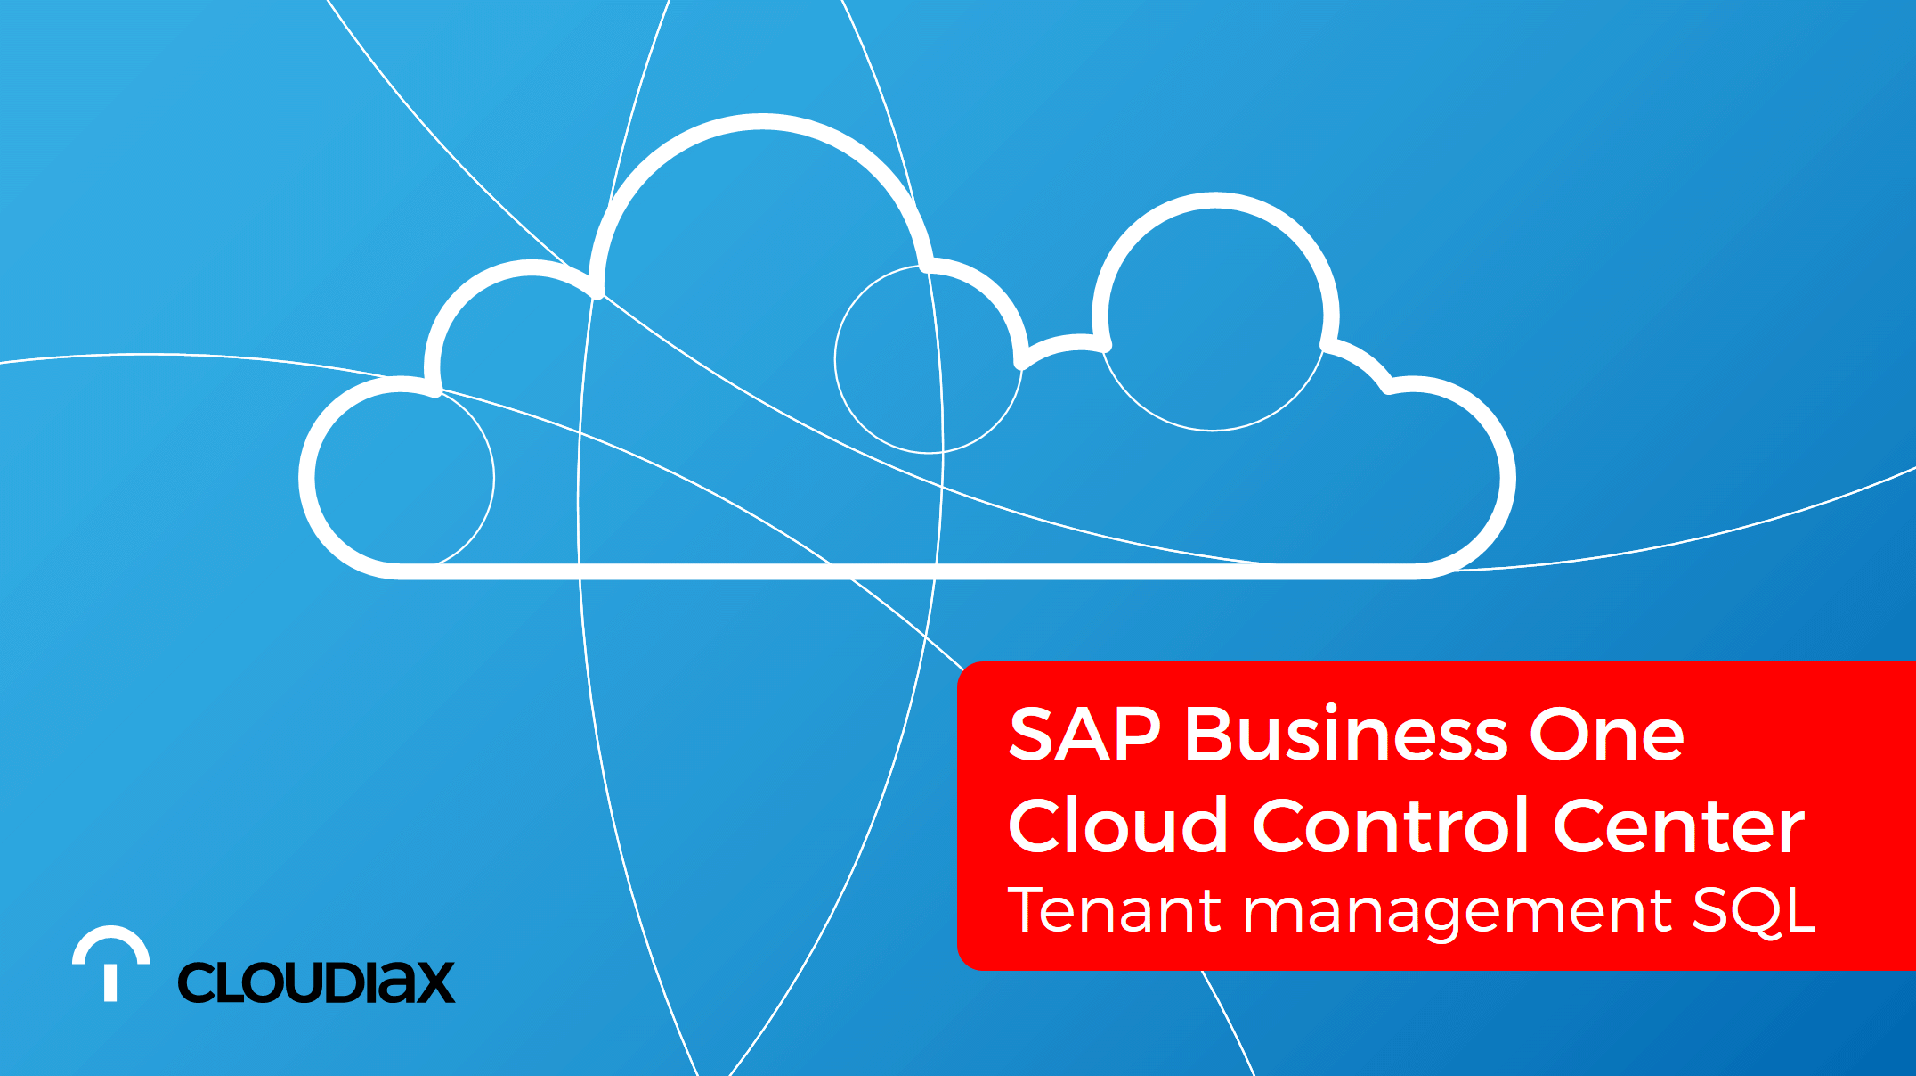 SAP Business One Cloud Control Center - Tenant management SQL